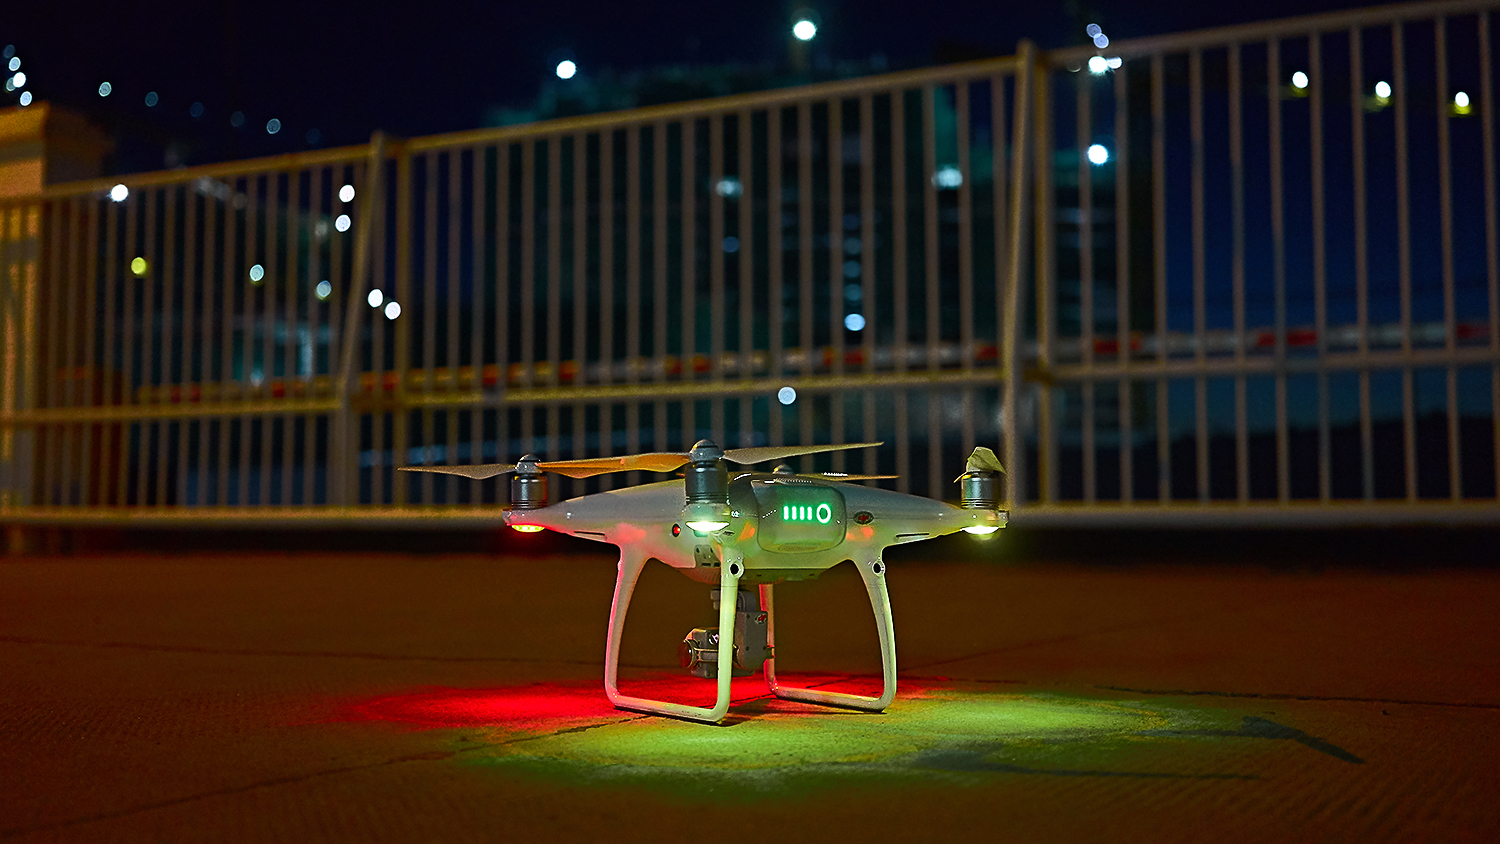 Our drone, the busiest worker of the team.